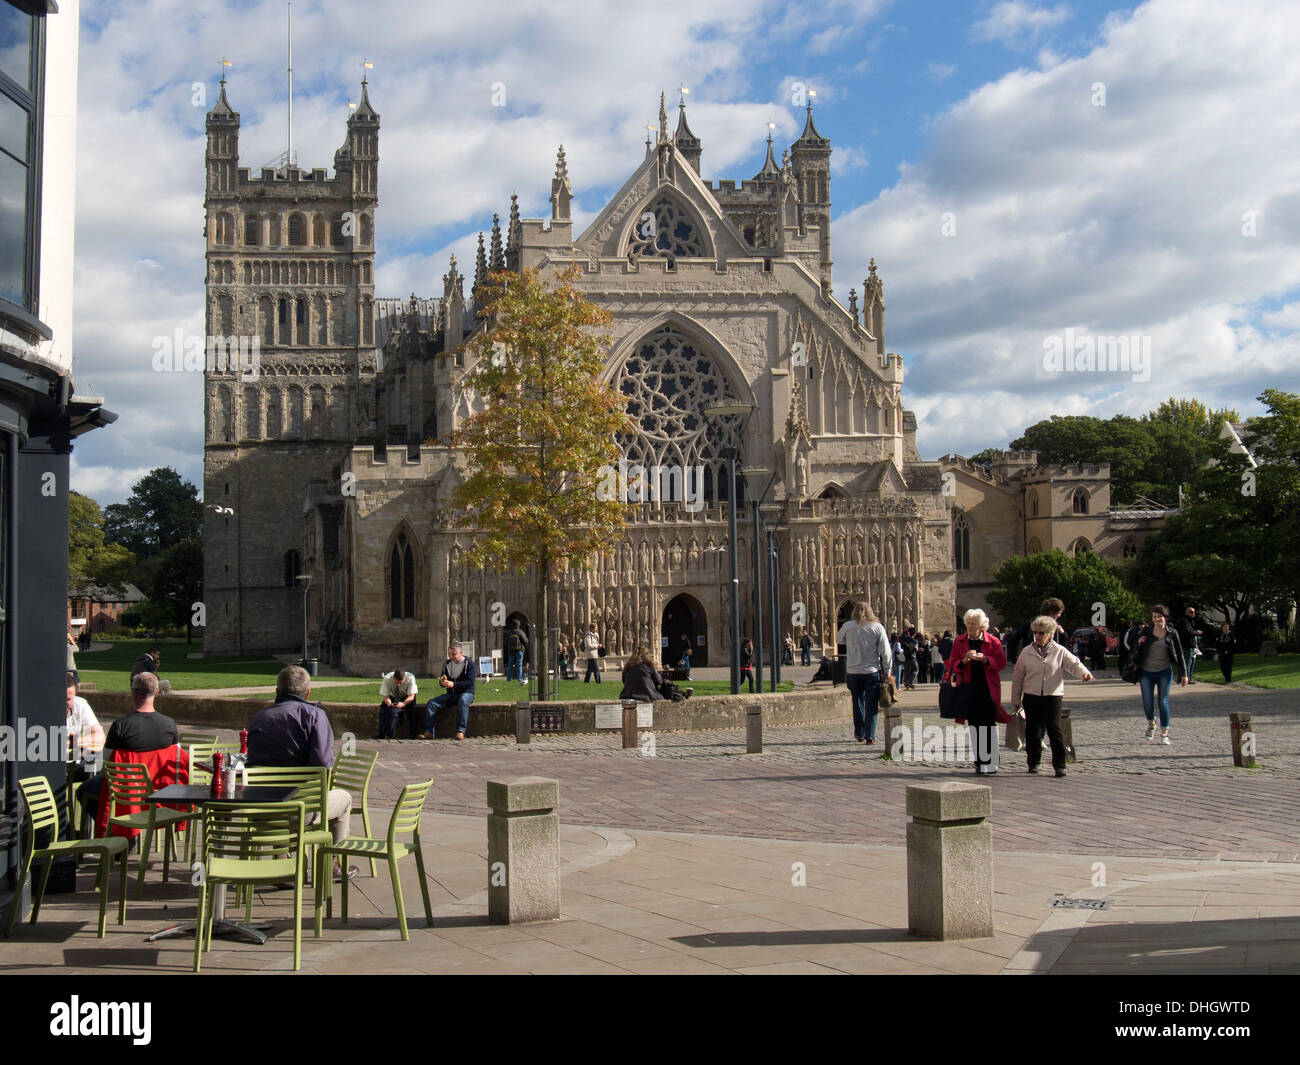 Cathedral Church of Saint Peter at Exeter, Devon - Stock Image